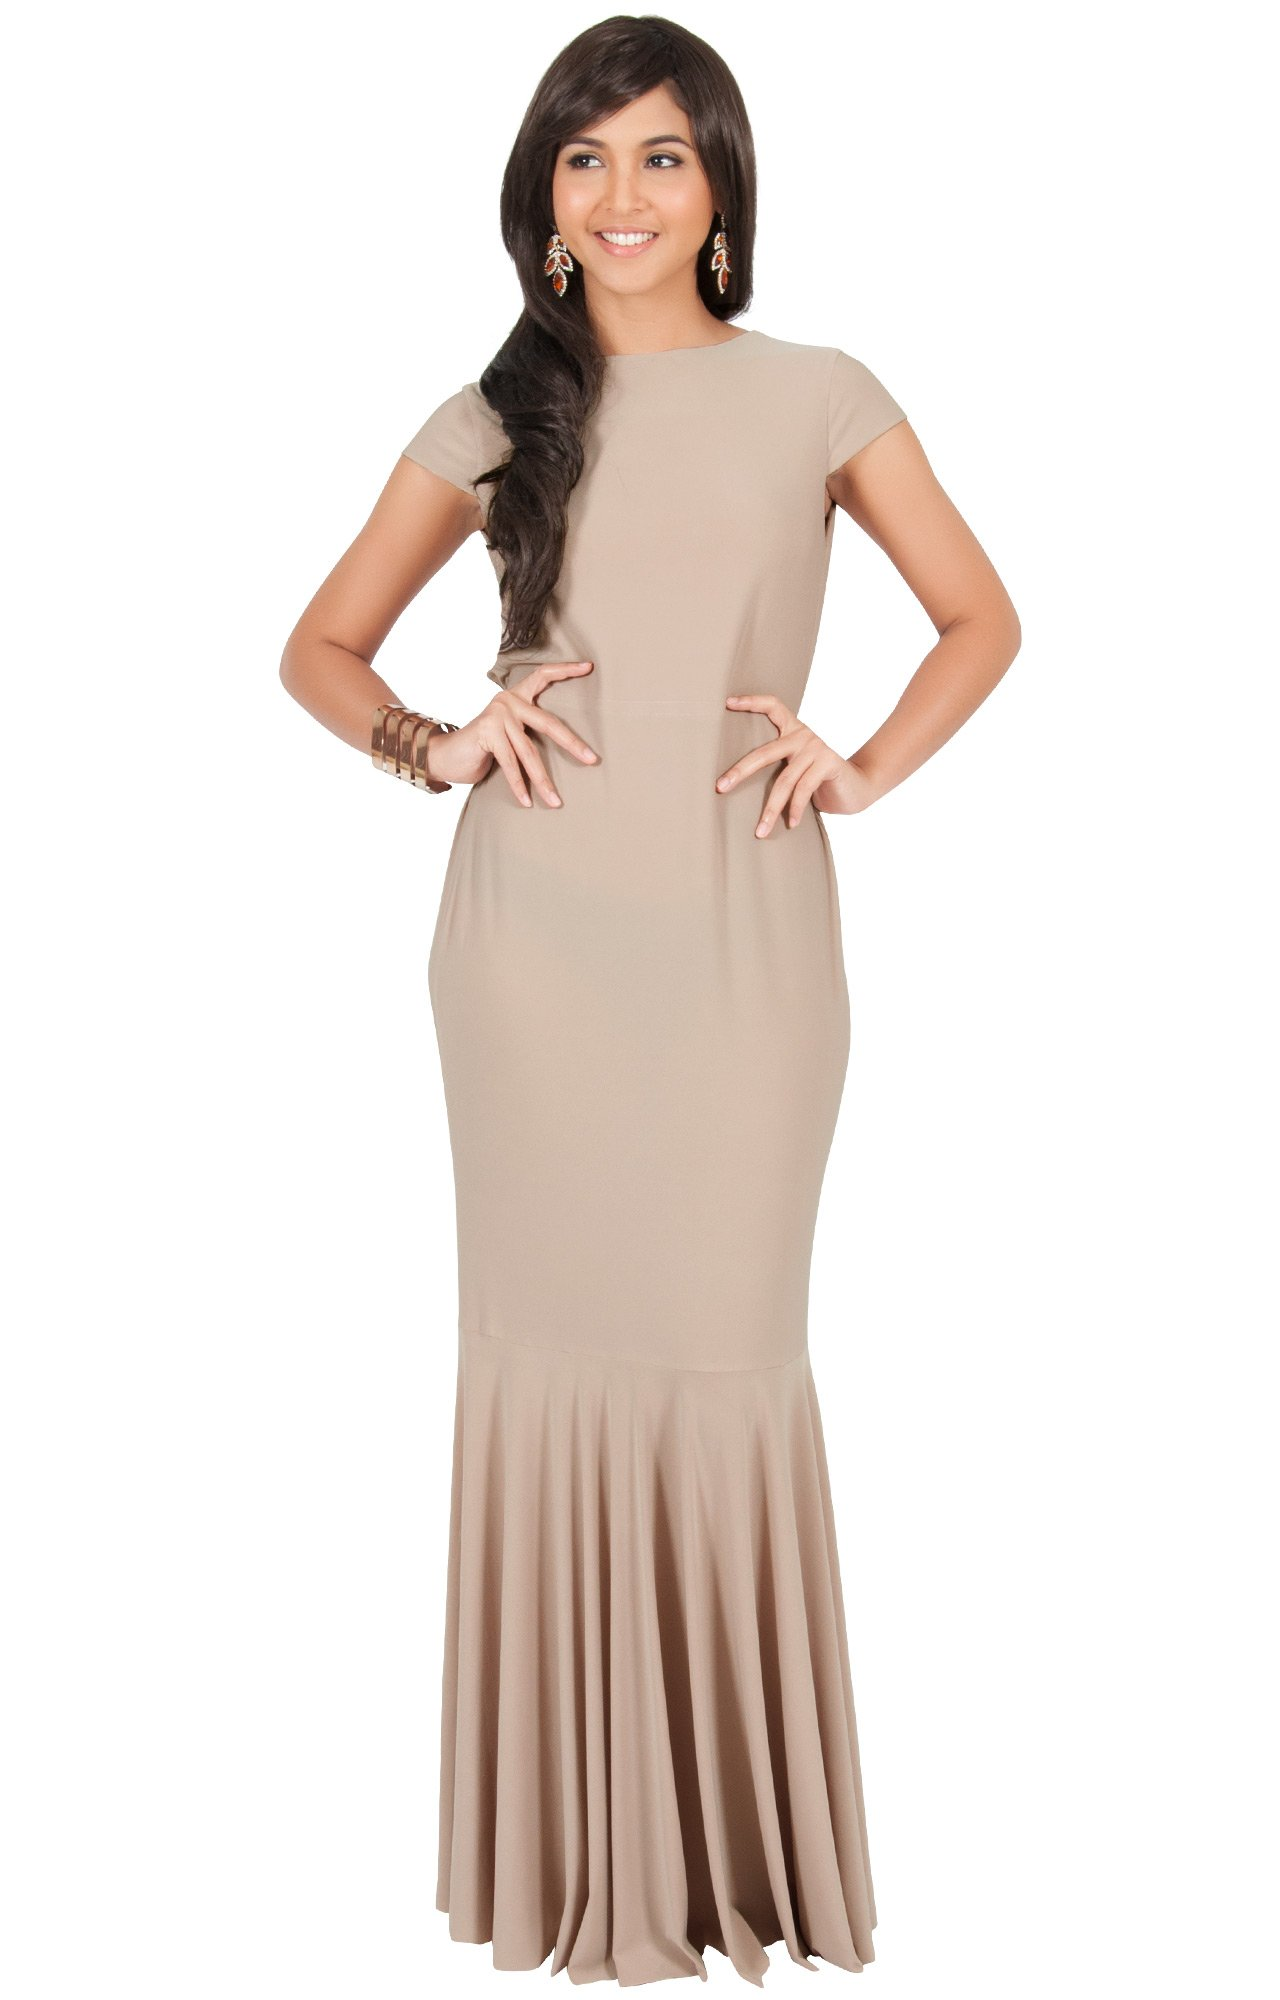 KOH KOH Plus Size Womens Long Cap Short Sleeve Formal Sexy Evening Prom Cocktail Bridesmaids Wedding Party Guest Tube Flowy Cute Fishtail Gown Gowns Maxi Dress Dresses, Brown/Latte 2XL 18-20